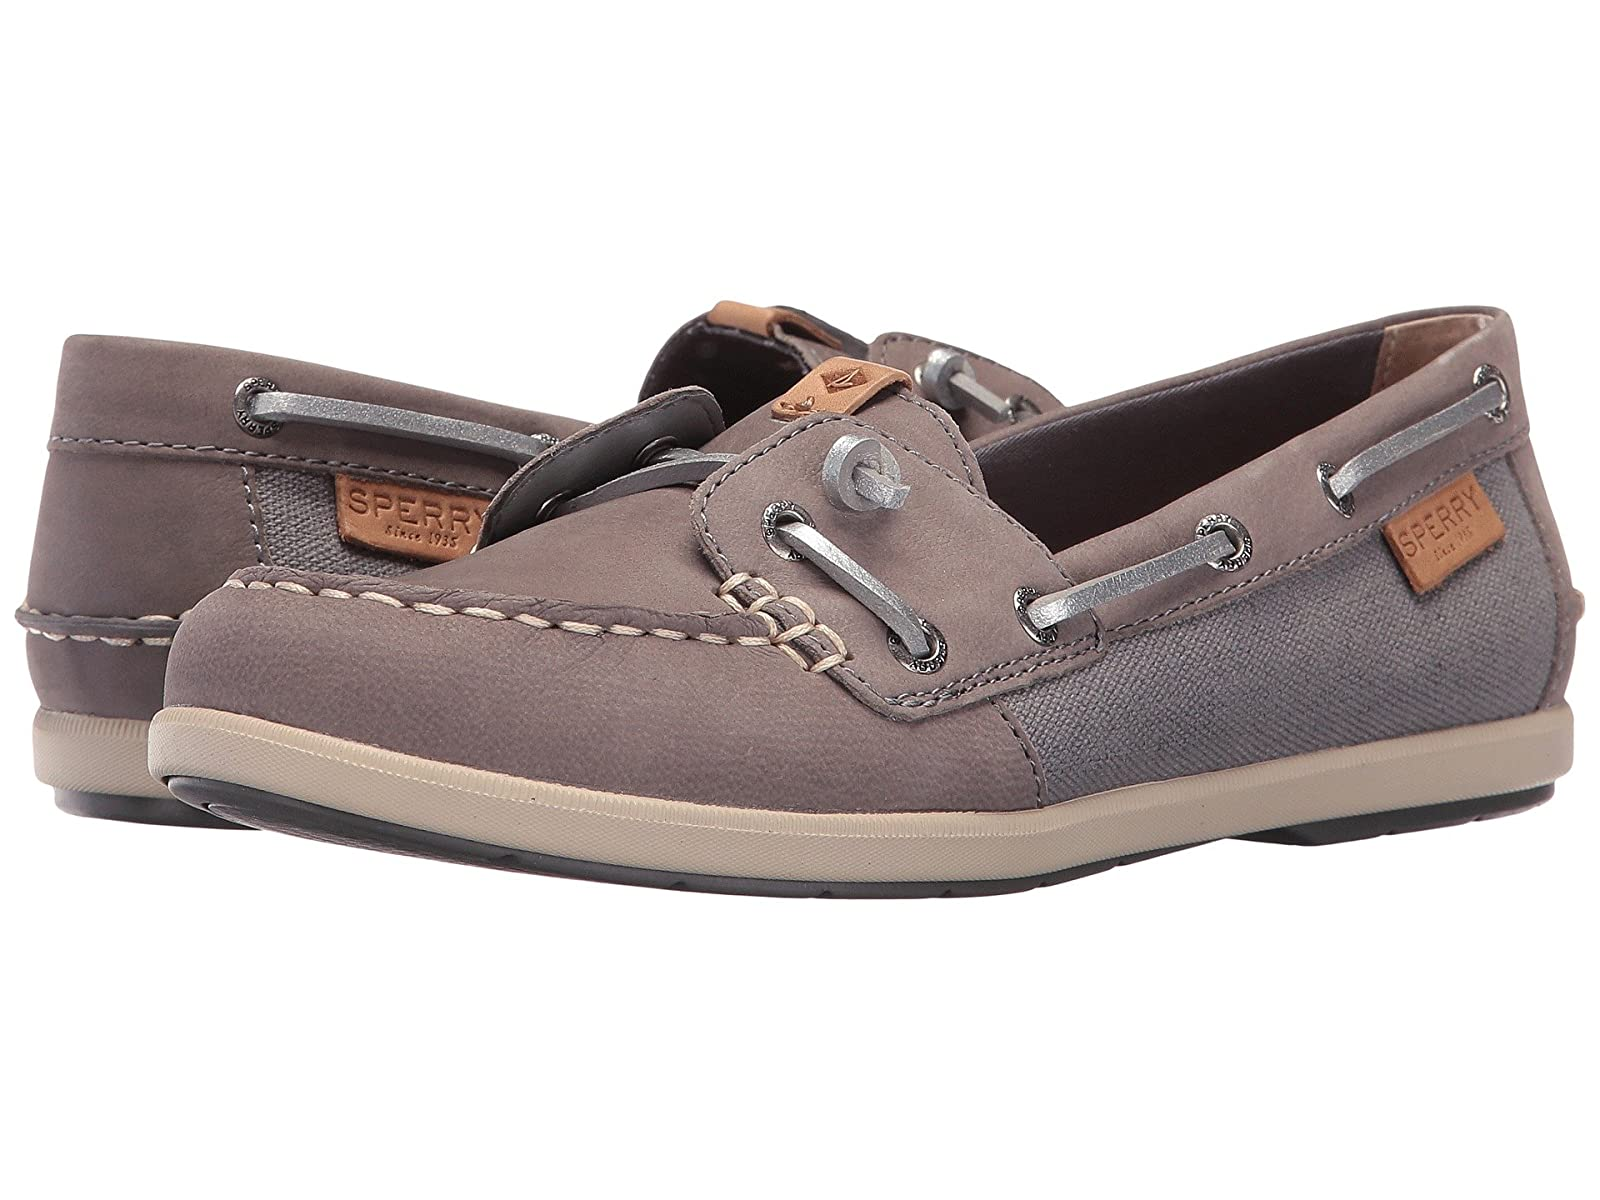 Sperry Coil Ivy Leather CanvasCheap and distinctive eye-catching shoes